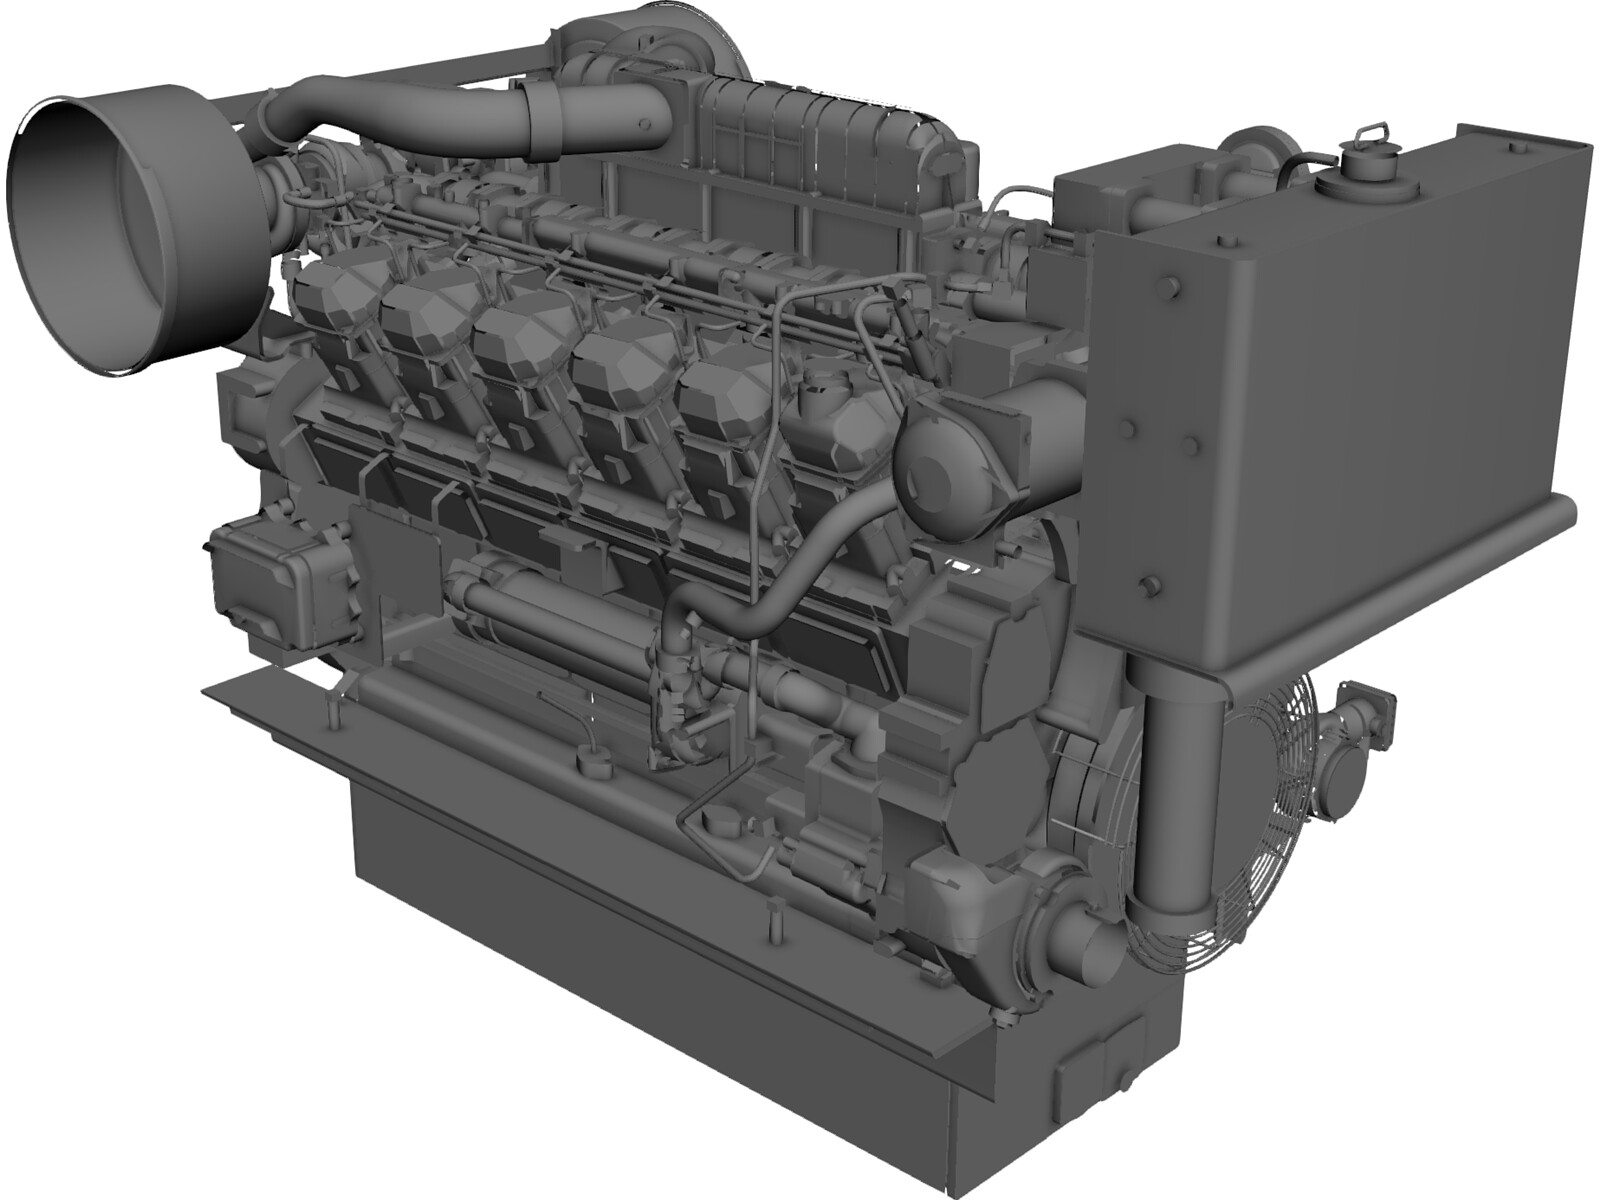 Engine Diesel 3D Model